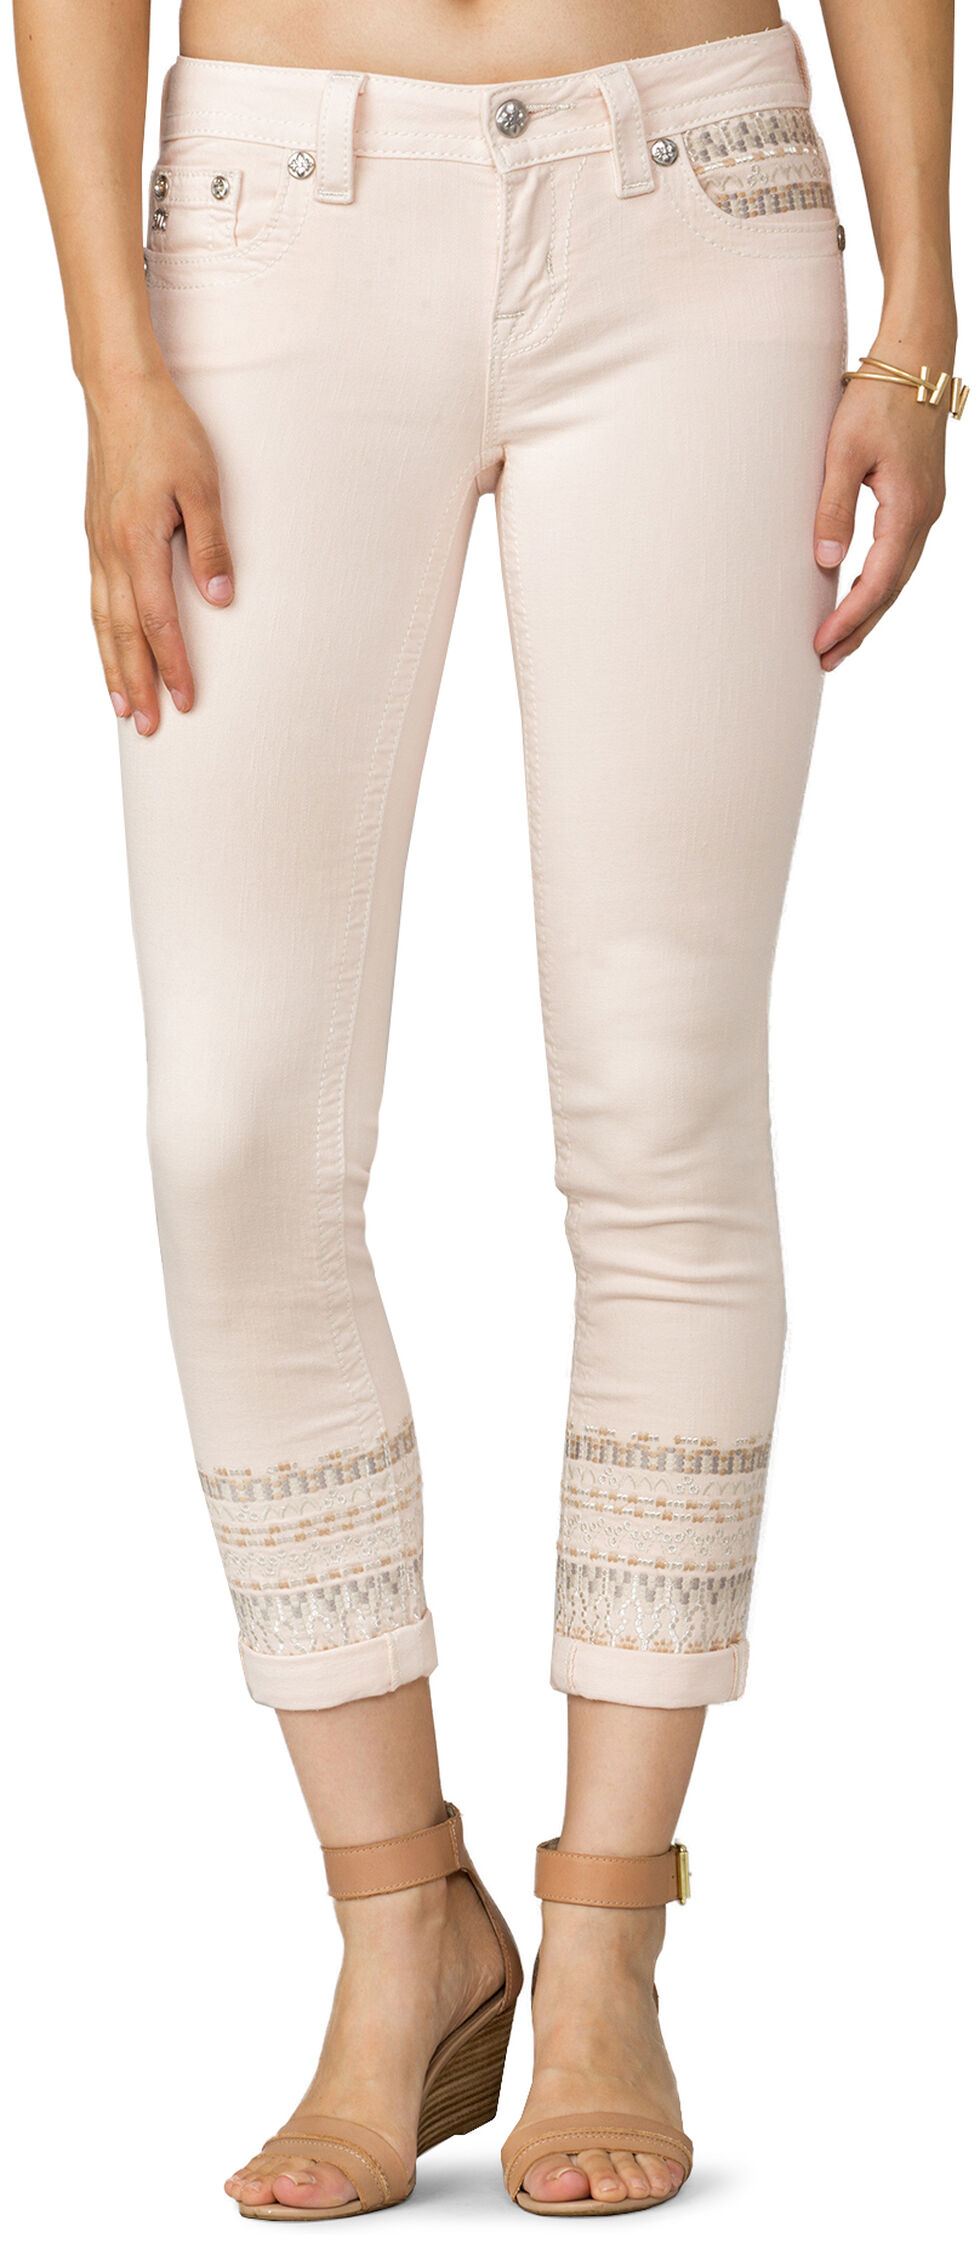 Miss Me Women's Boho Dreams Mid-Rise Ankle Skinny Jeans, Pink, hi-res